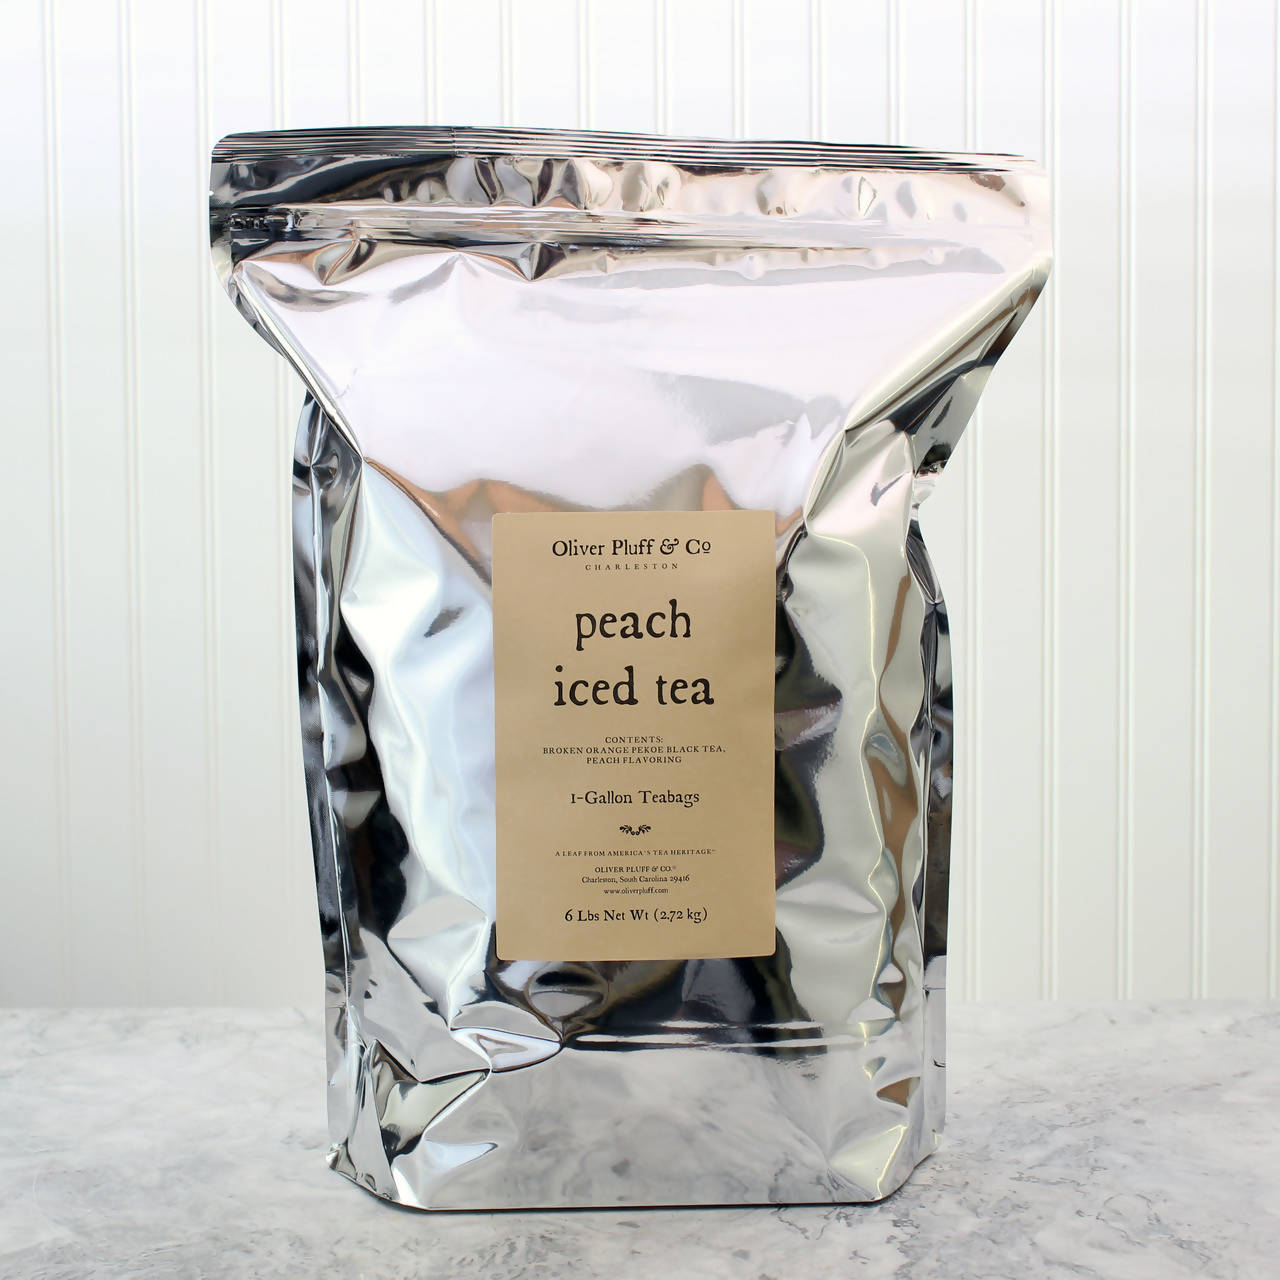 Peach Iced Tea - 96 One-Gallon Teabags